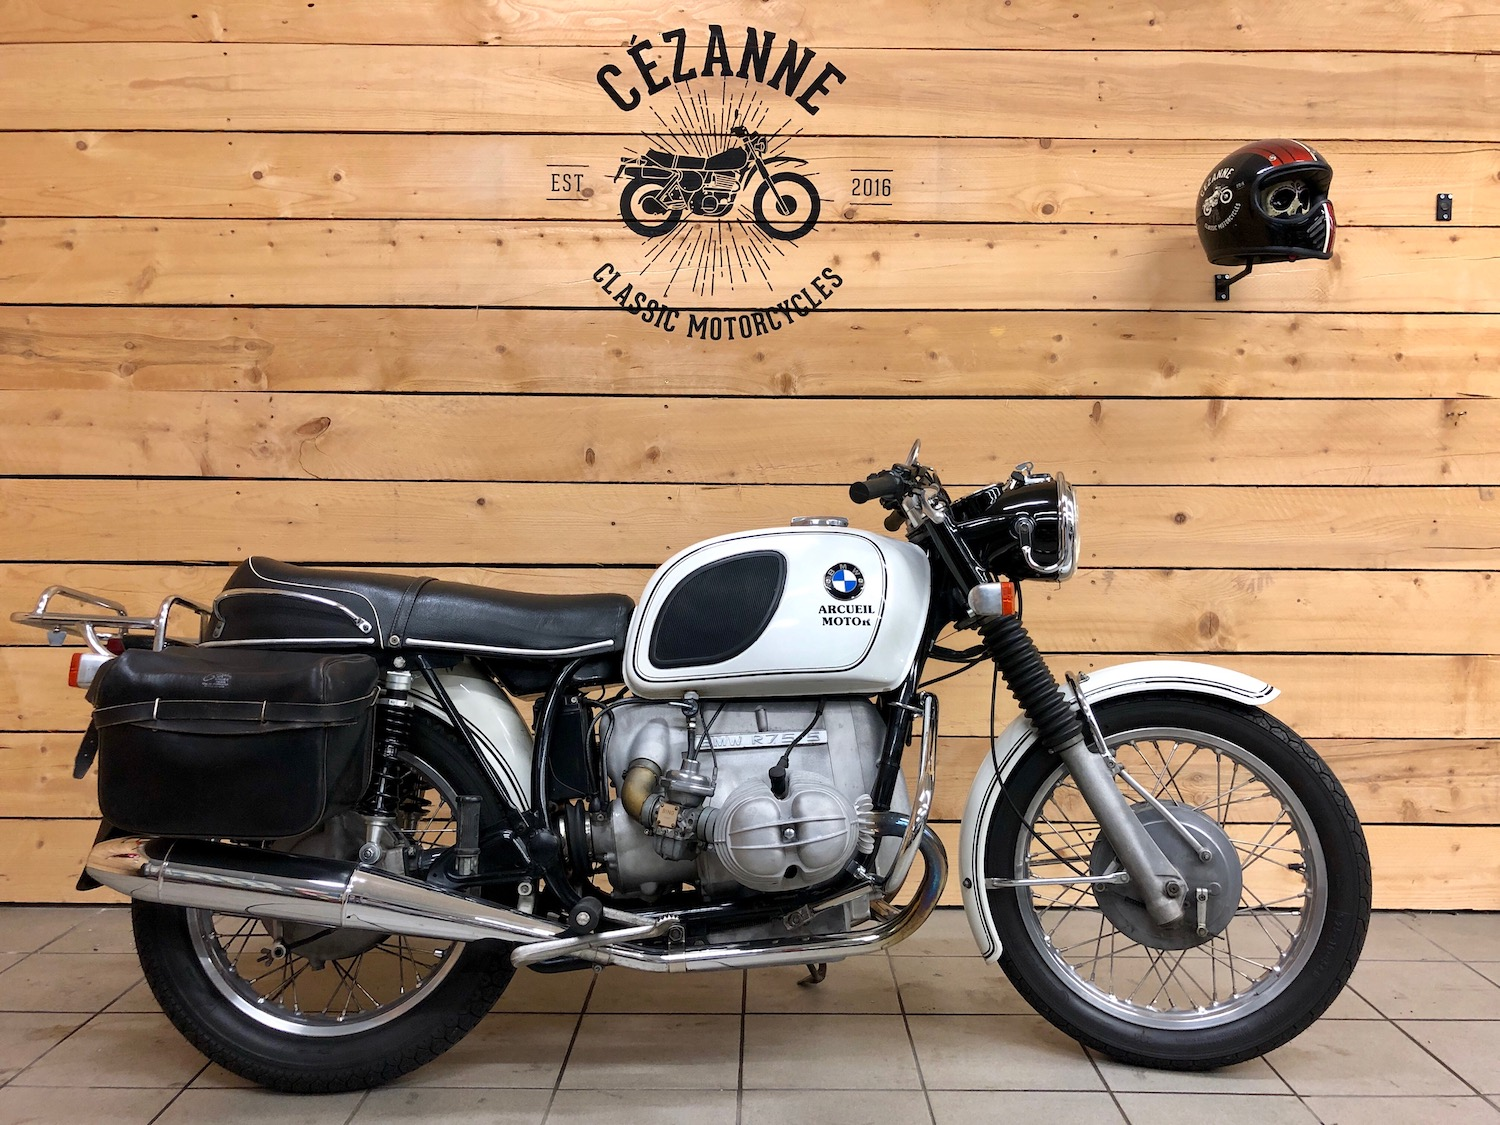 bmw_r75_cezanne_classic_motorcycle_6-75.jpg